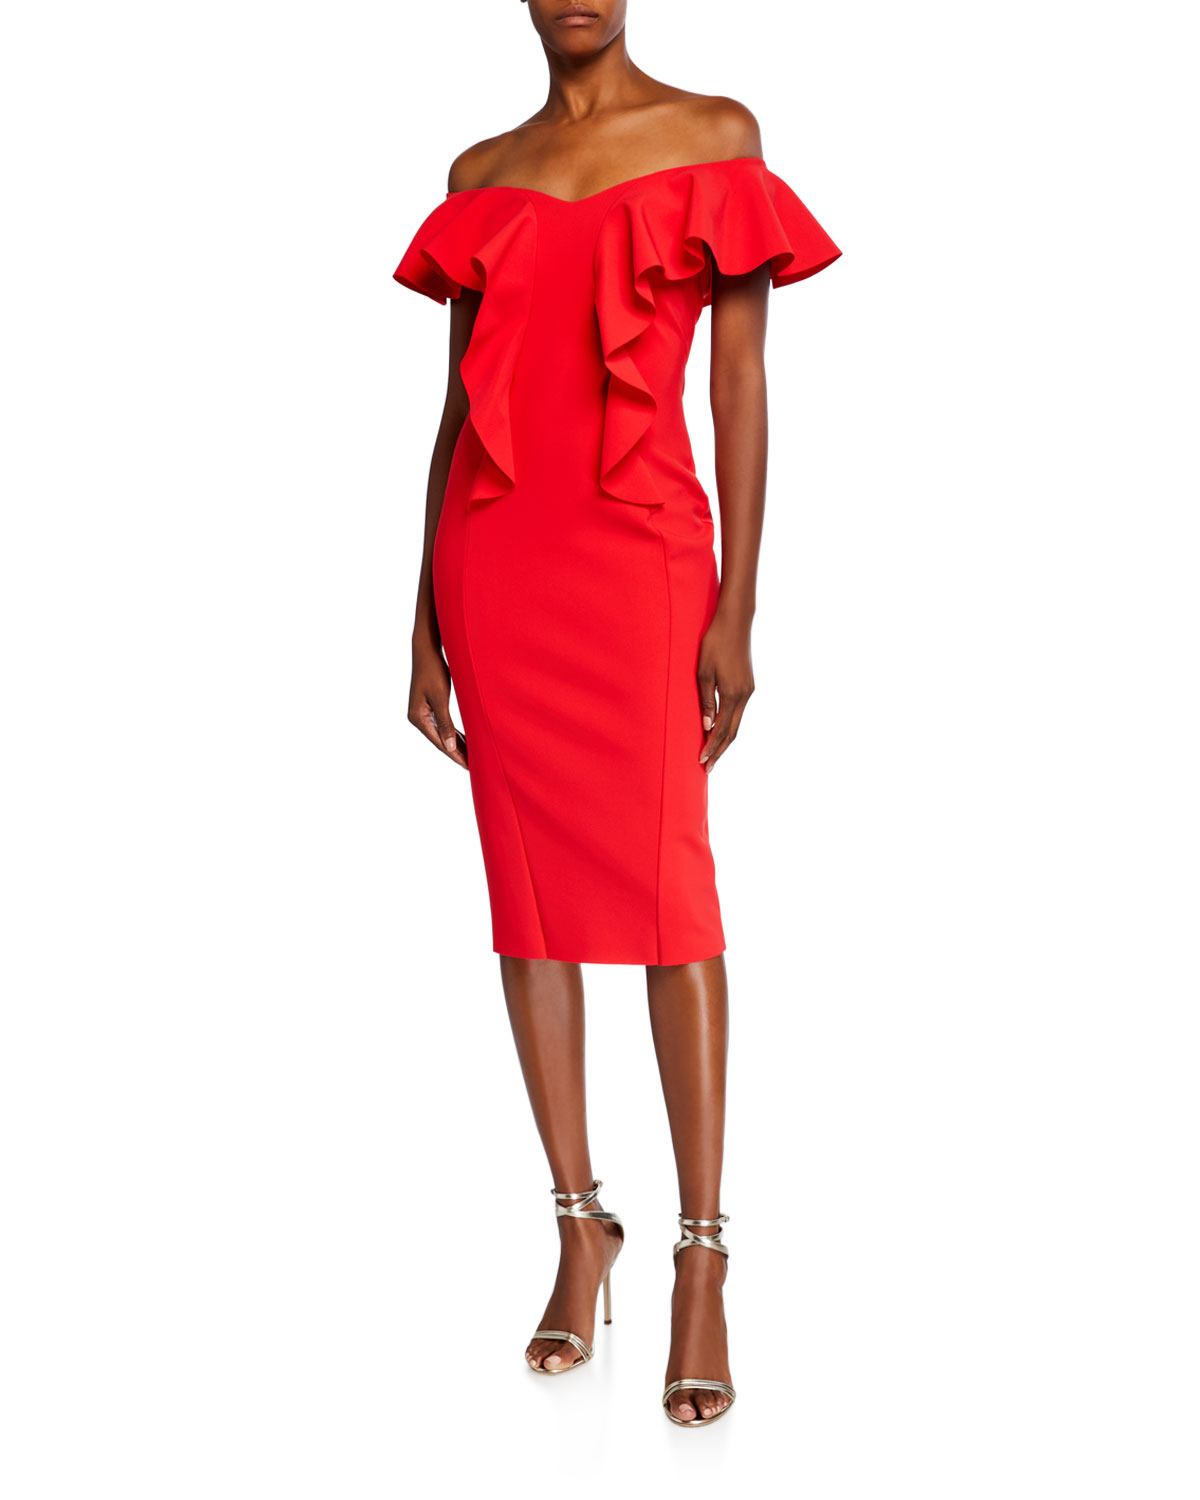 Chiara Boni La Petite Robe Off-the-Shoulder Ruffle Detail Sheath Dress